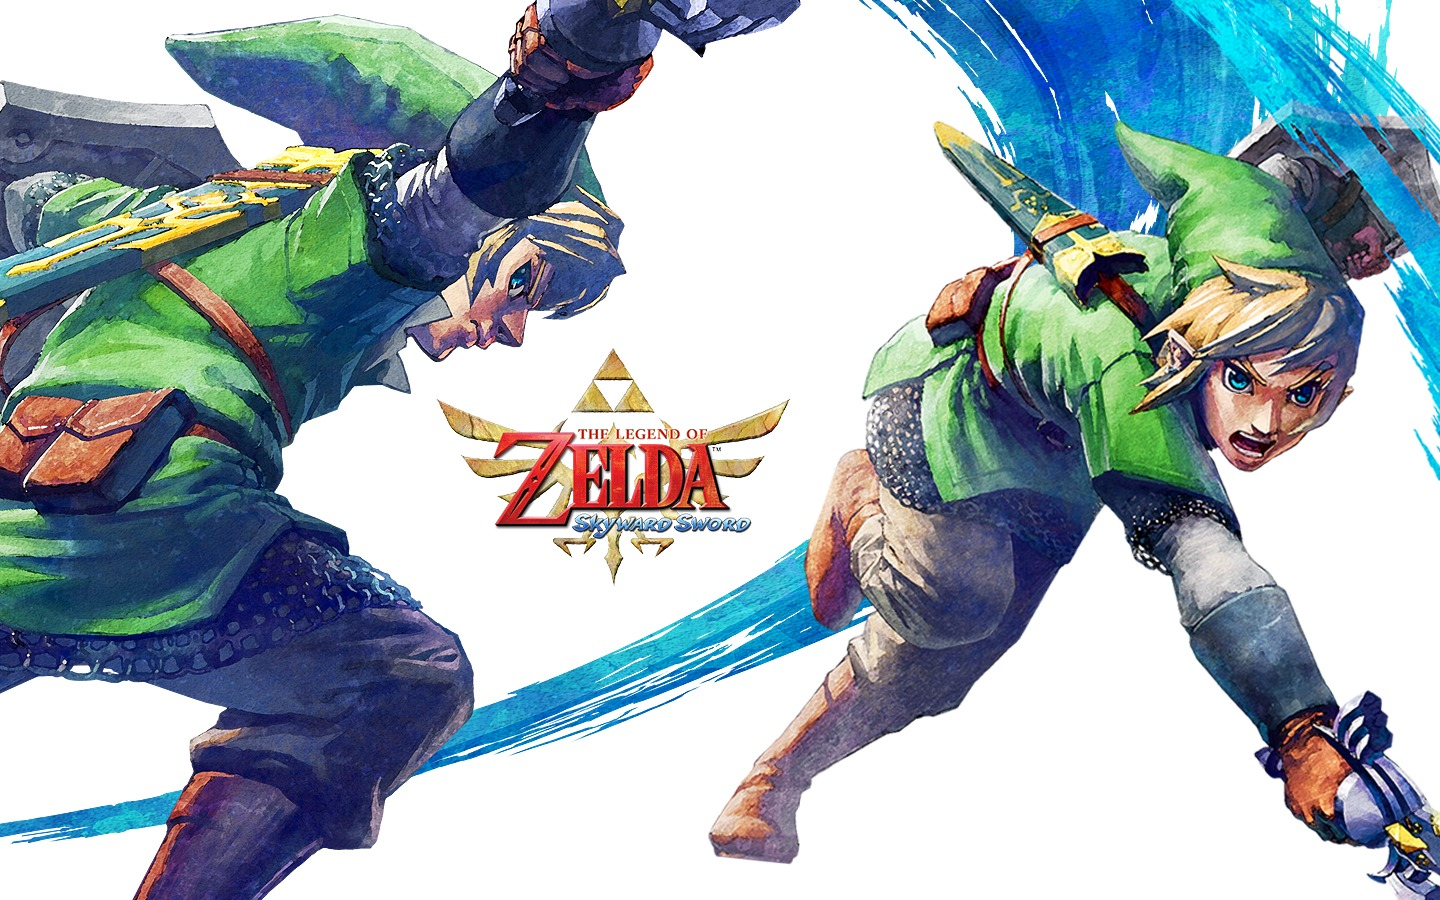 Zelda Skyward Sword in final development stages, will be released after OOT 3DS